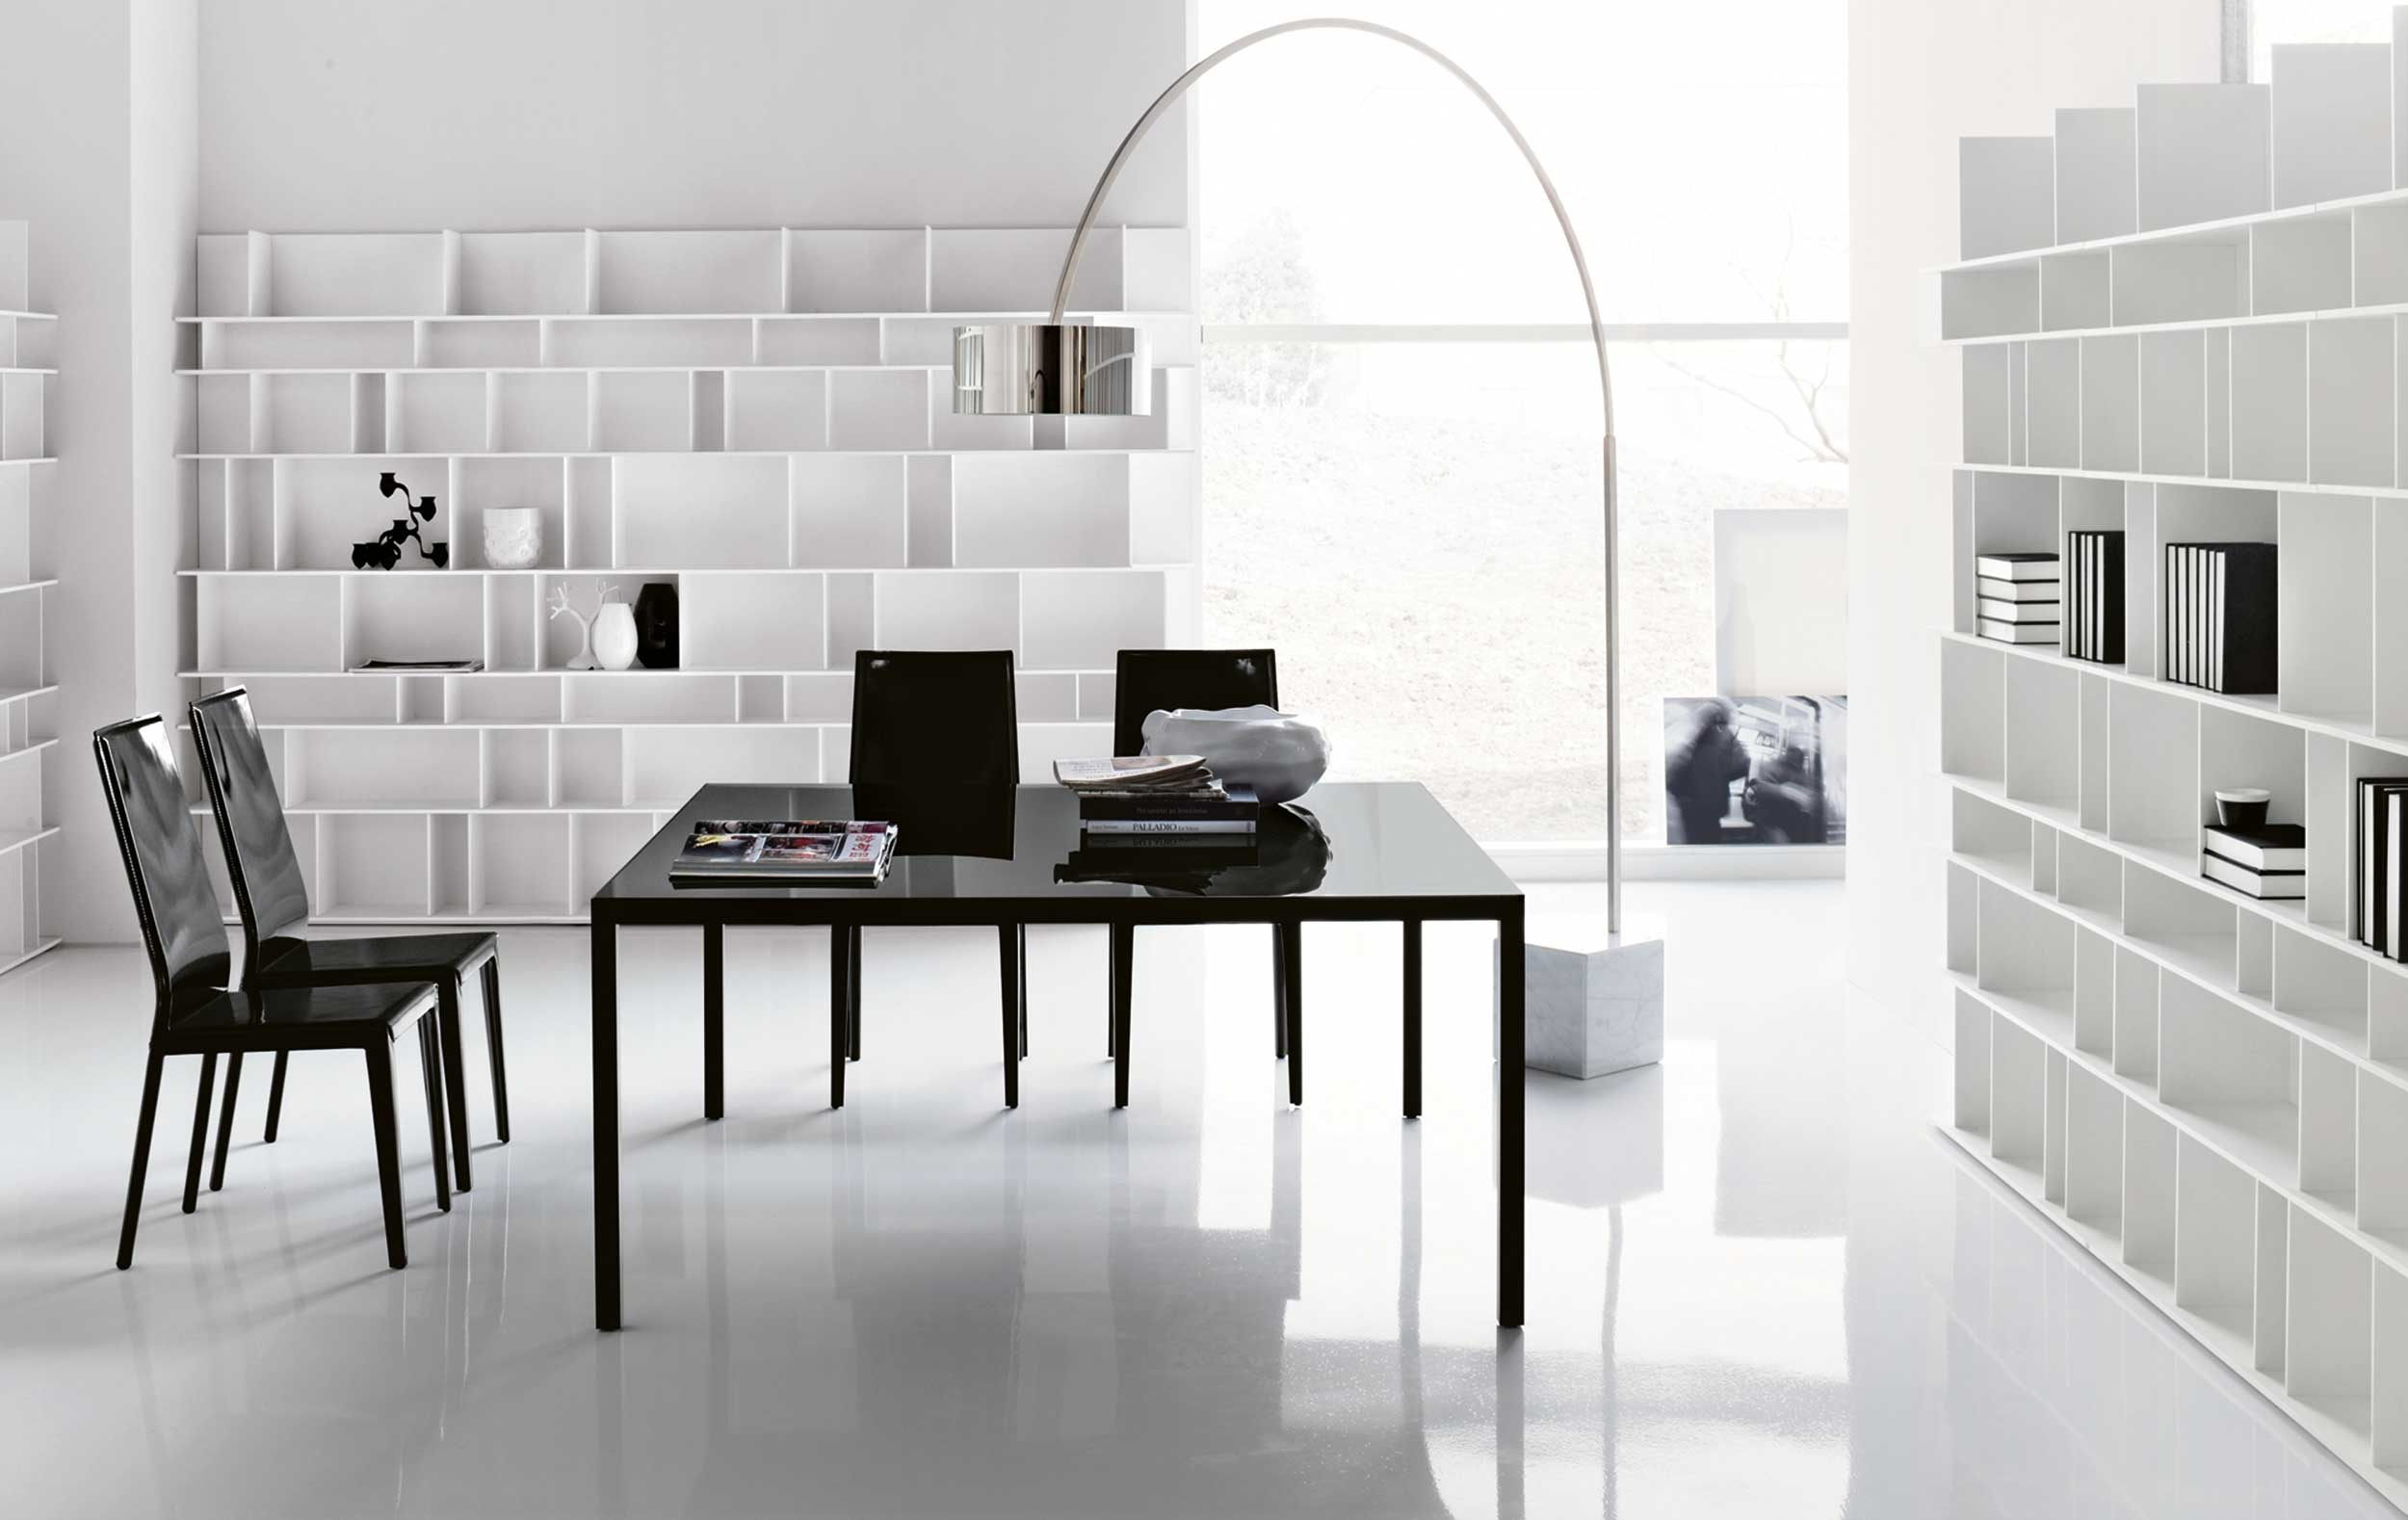 & 10 Stylish Modern Office Interior Decorating Ideas